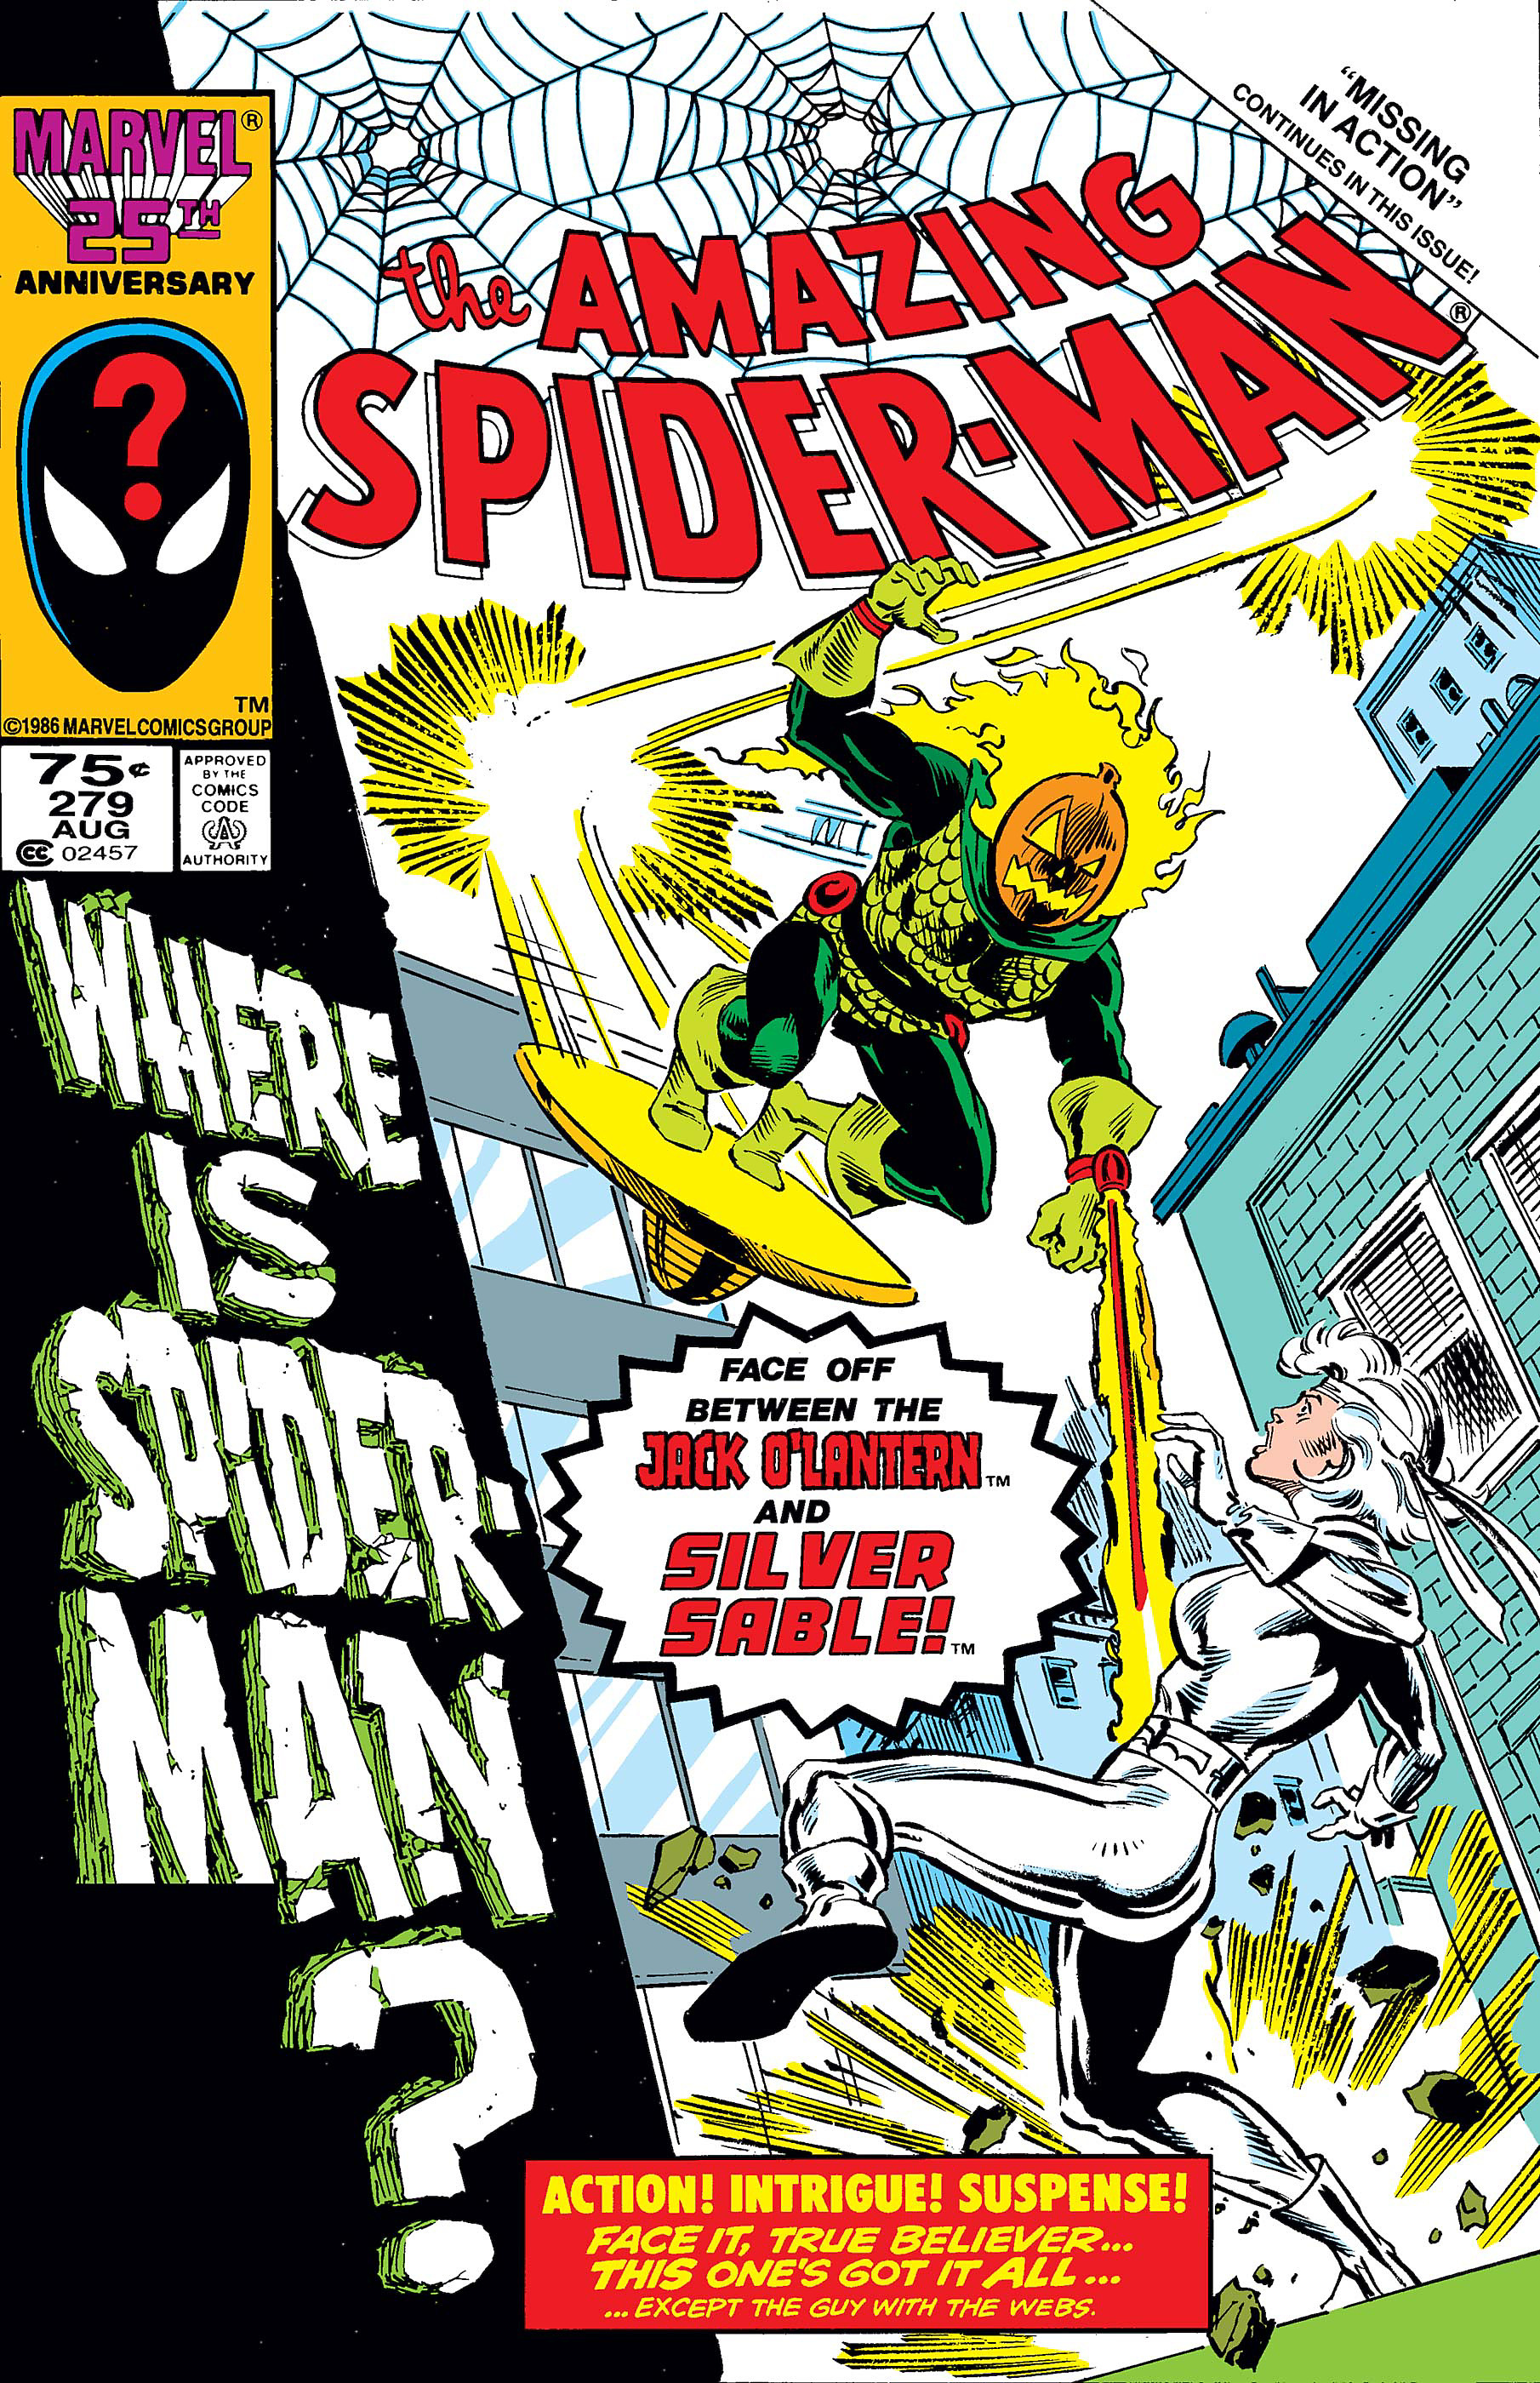 Amazing Spider-Man (1963) #279